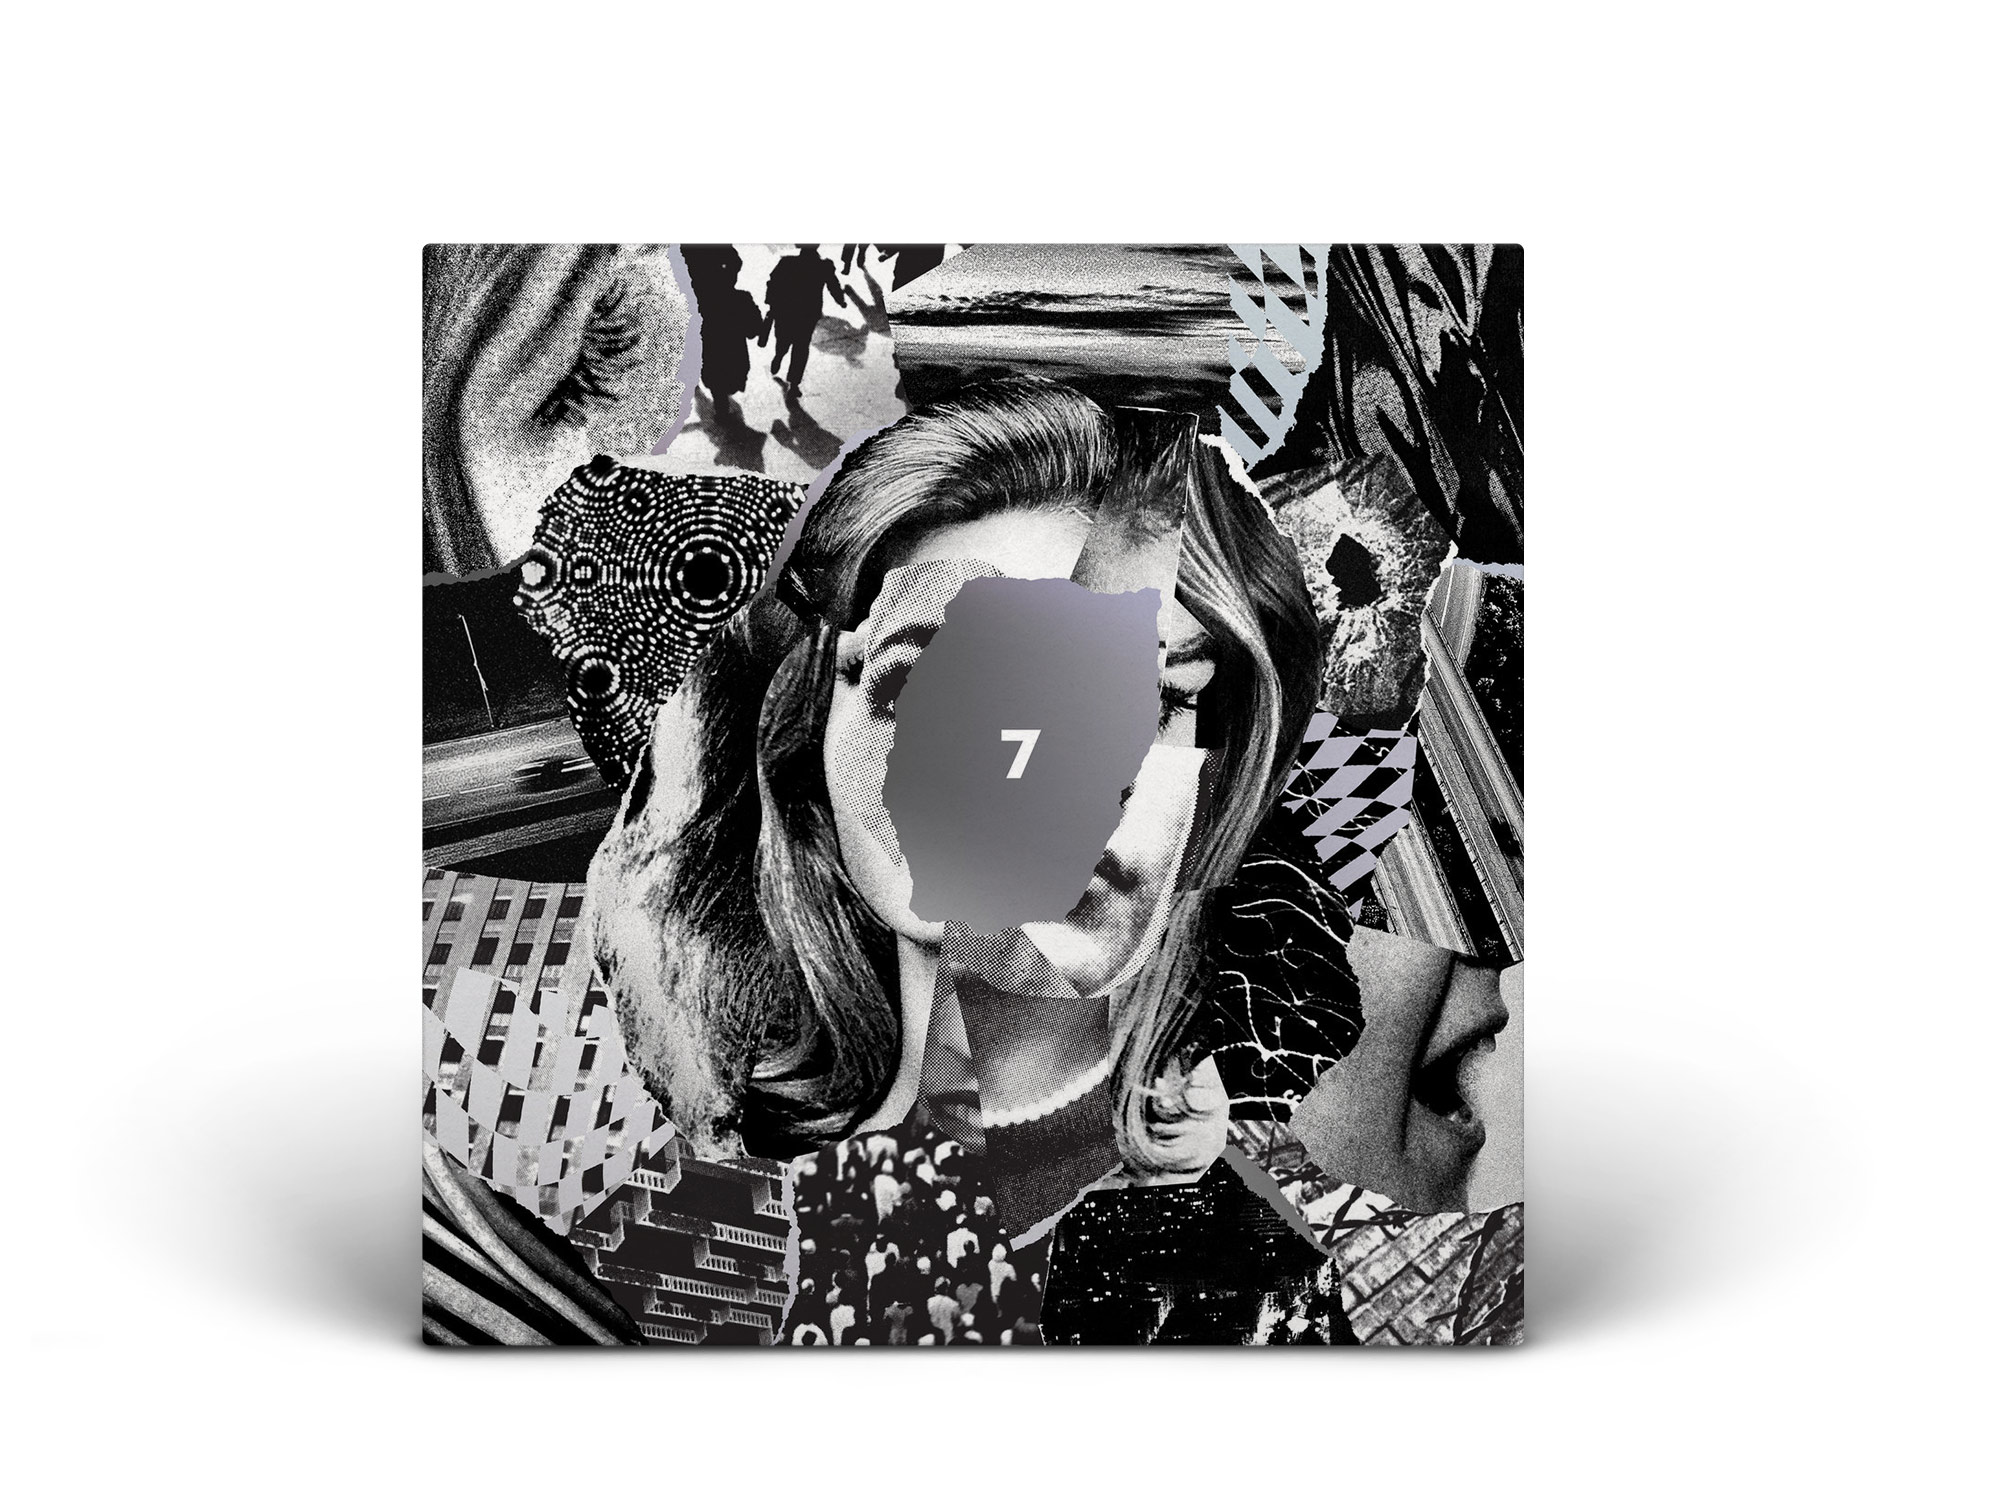 7 / Beach House - Best frequency of loneliness.